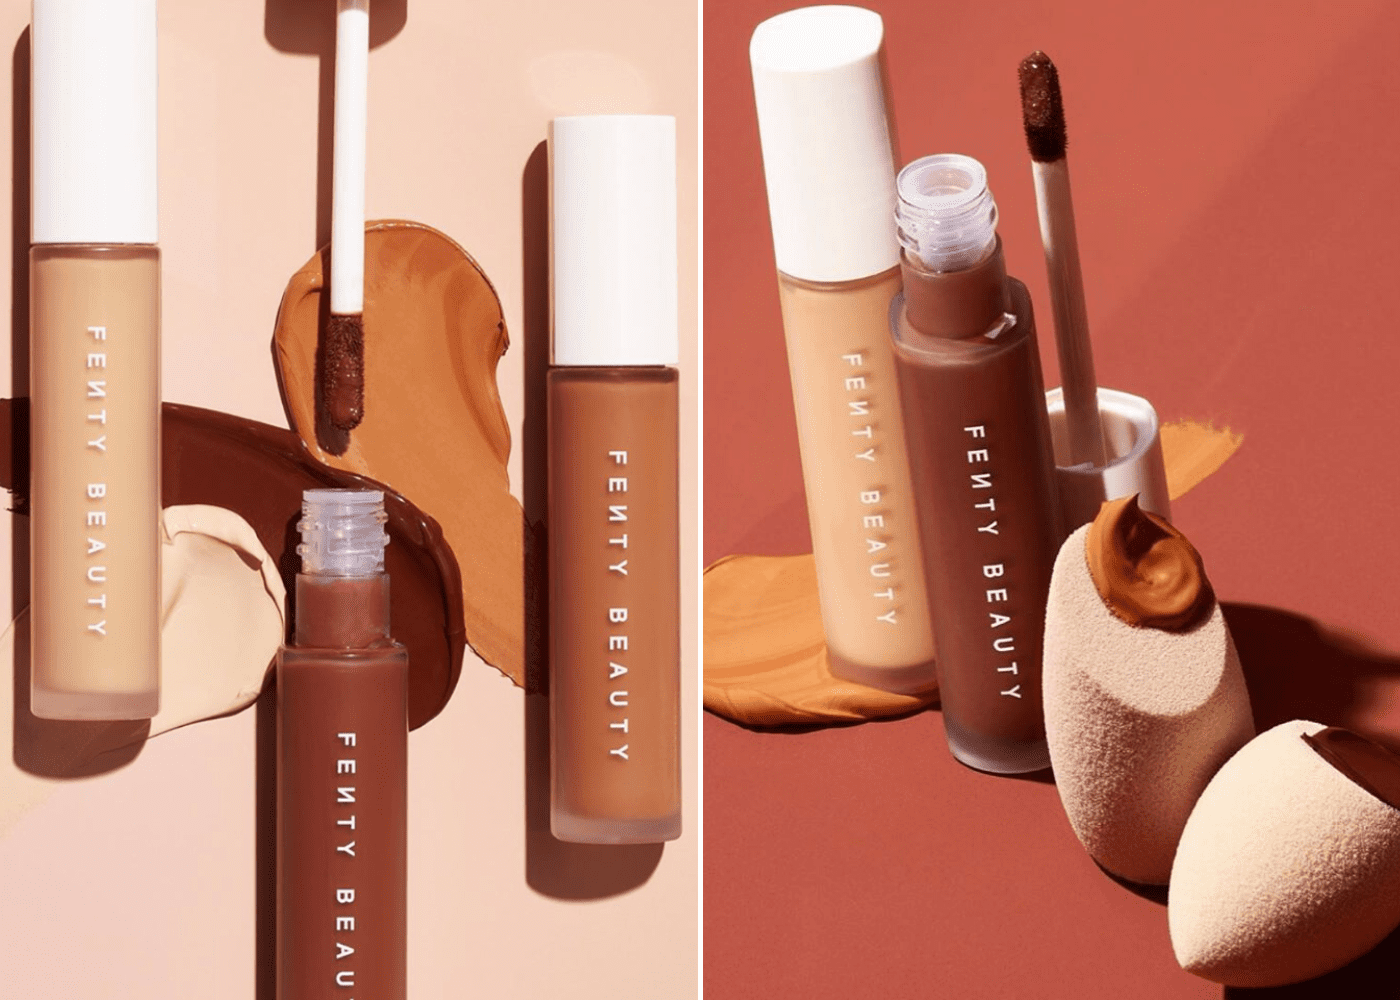 Fenty Beauty Pro Filtr' Instant Retouch Concealer | March 2020 beauty review | Honeycombers Singapore